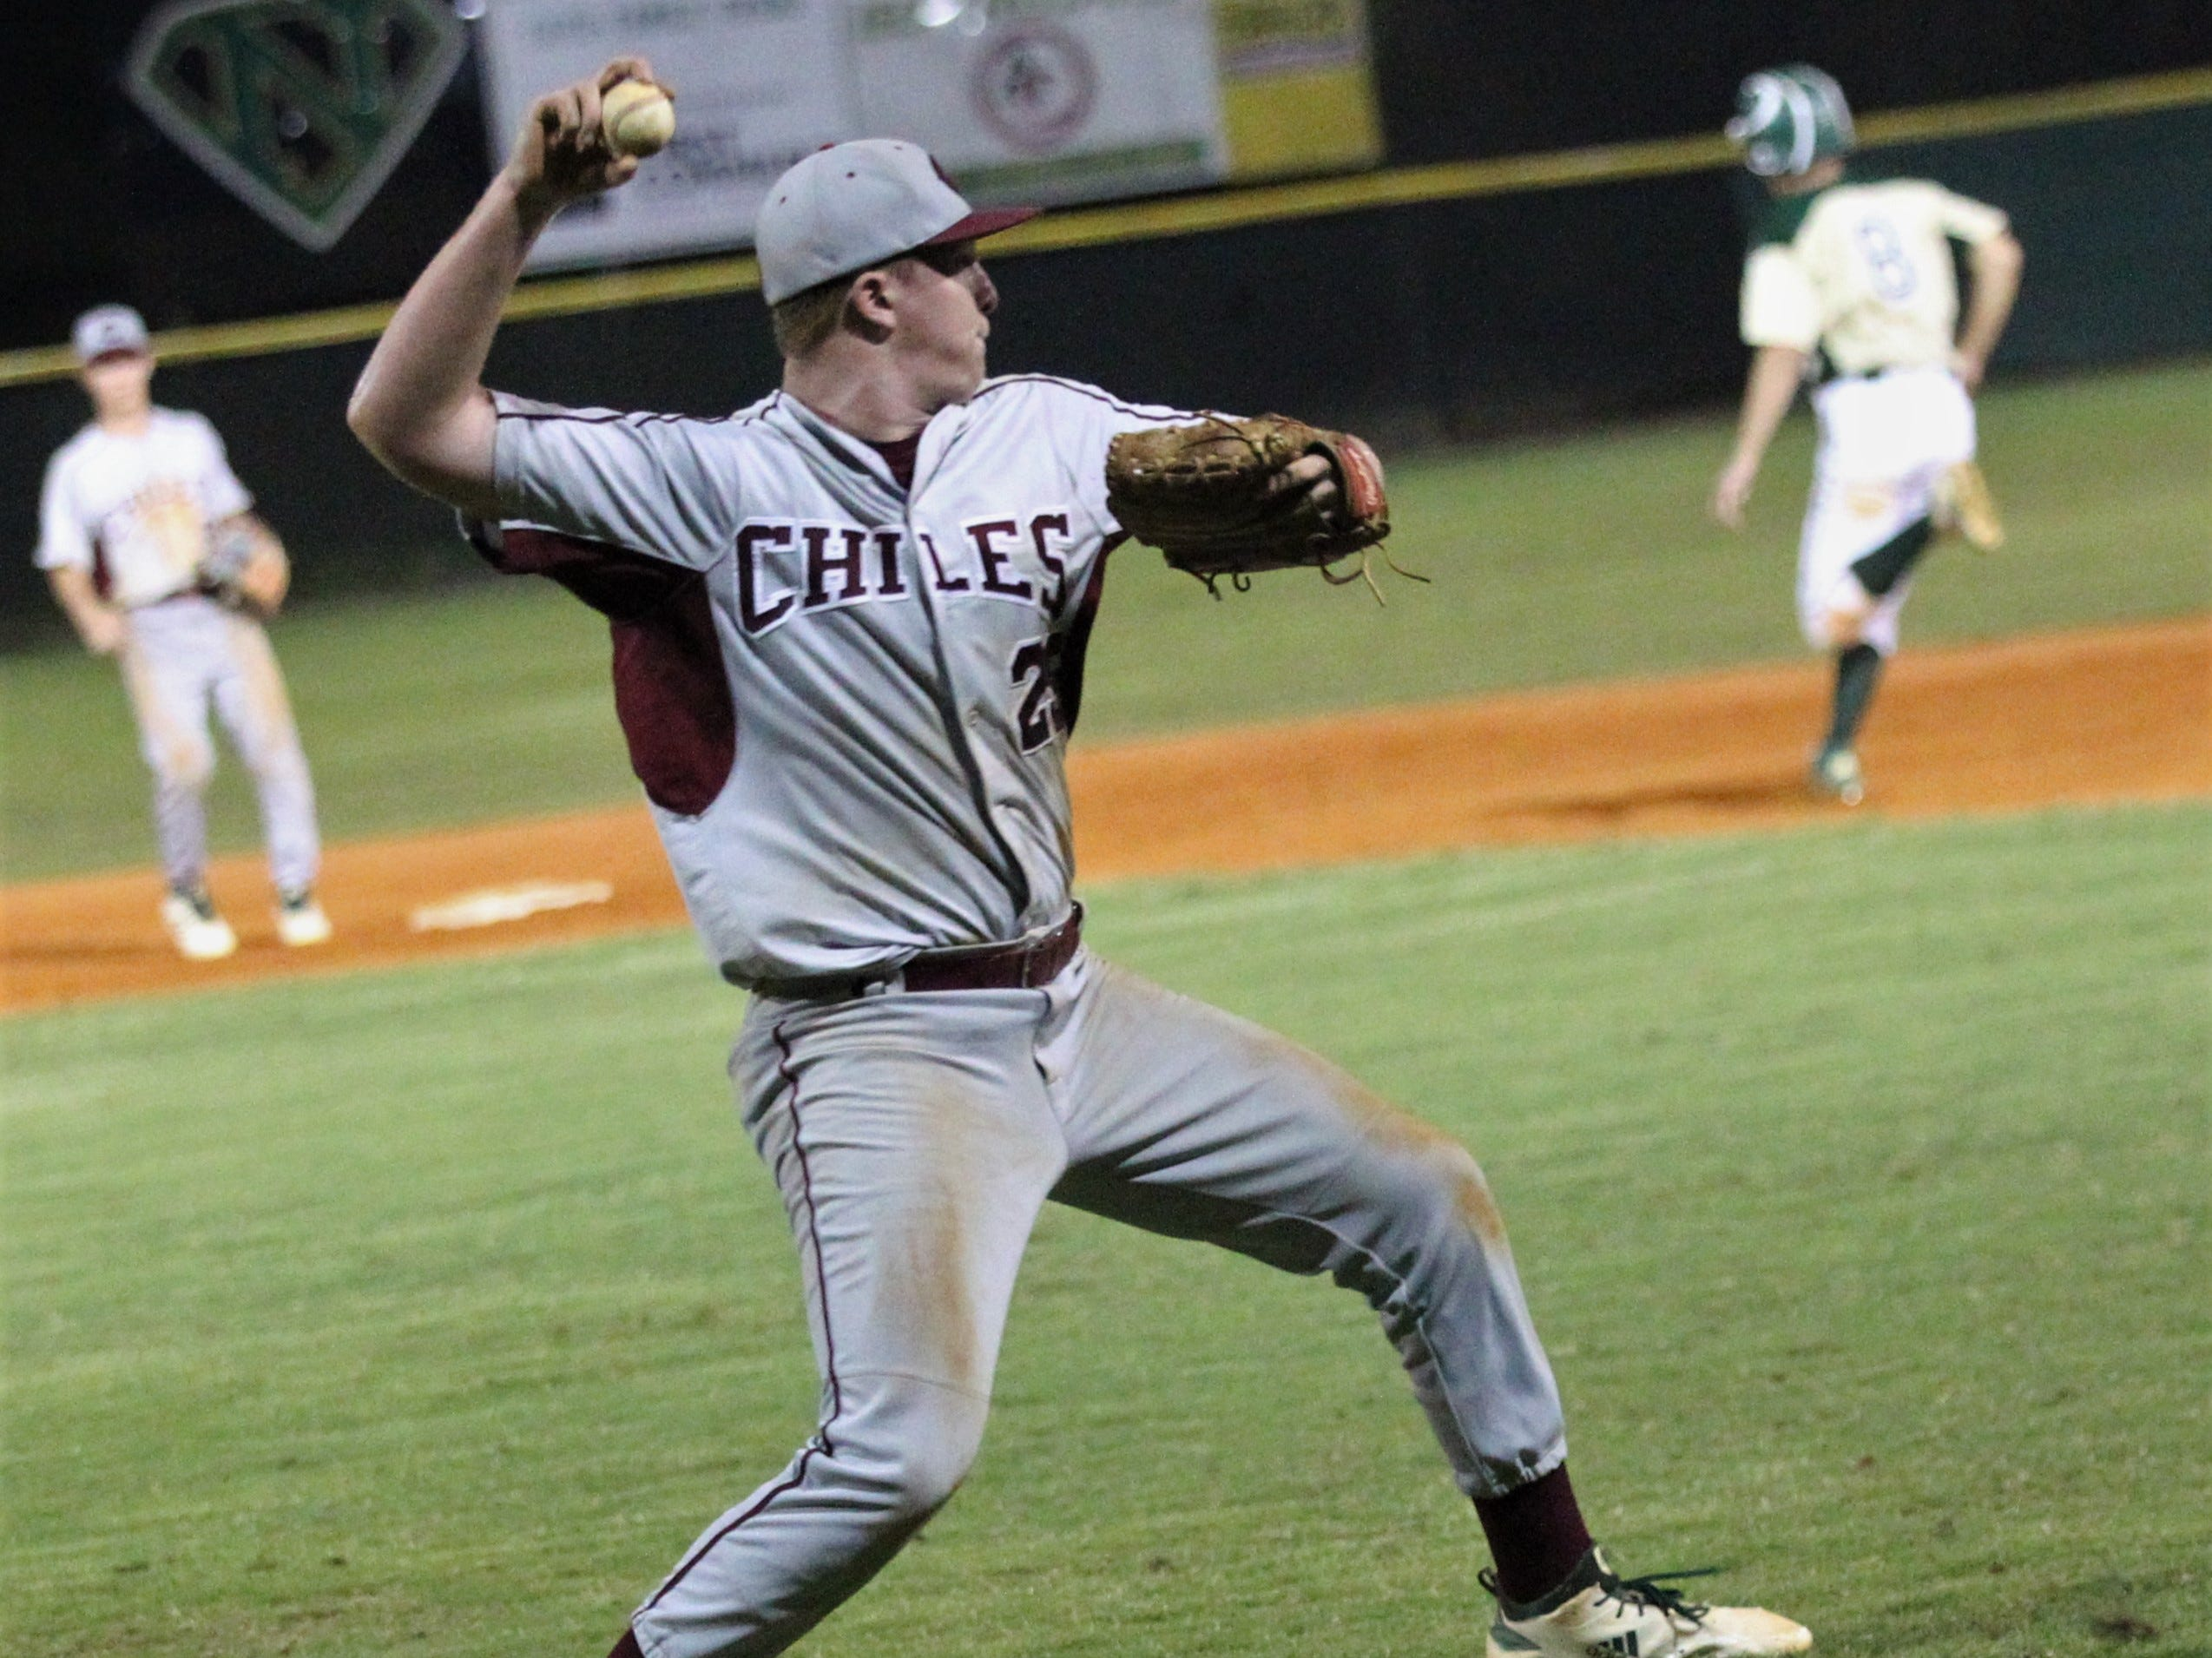 Chiles pitcher Wyatt Dodd fields his position on a bunt as Lincoln baseball beat Chiles 5-4  in 10 innings during a District 2-8A championship game on Thursday, May 9, 2019.